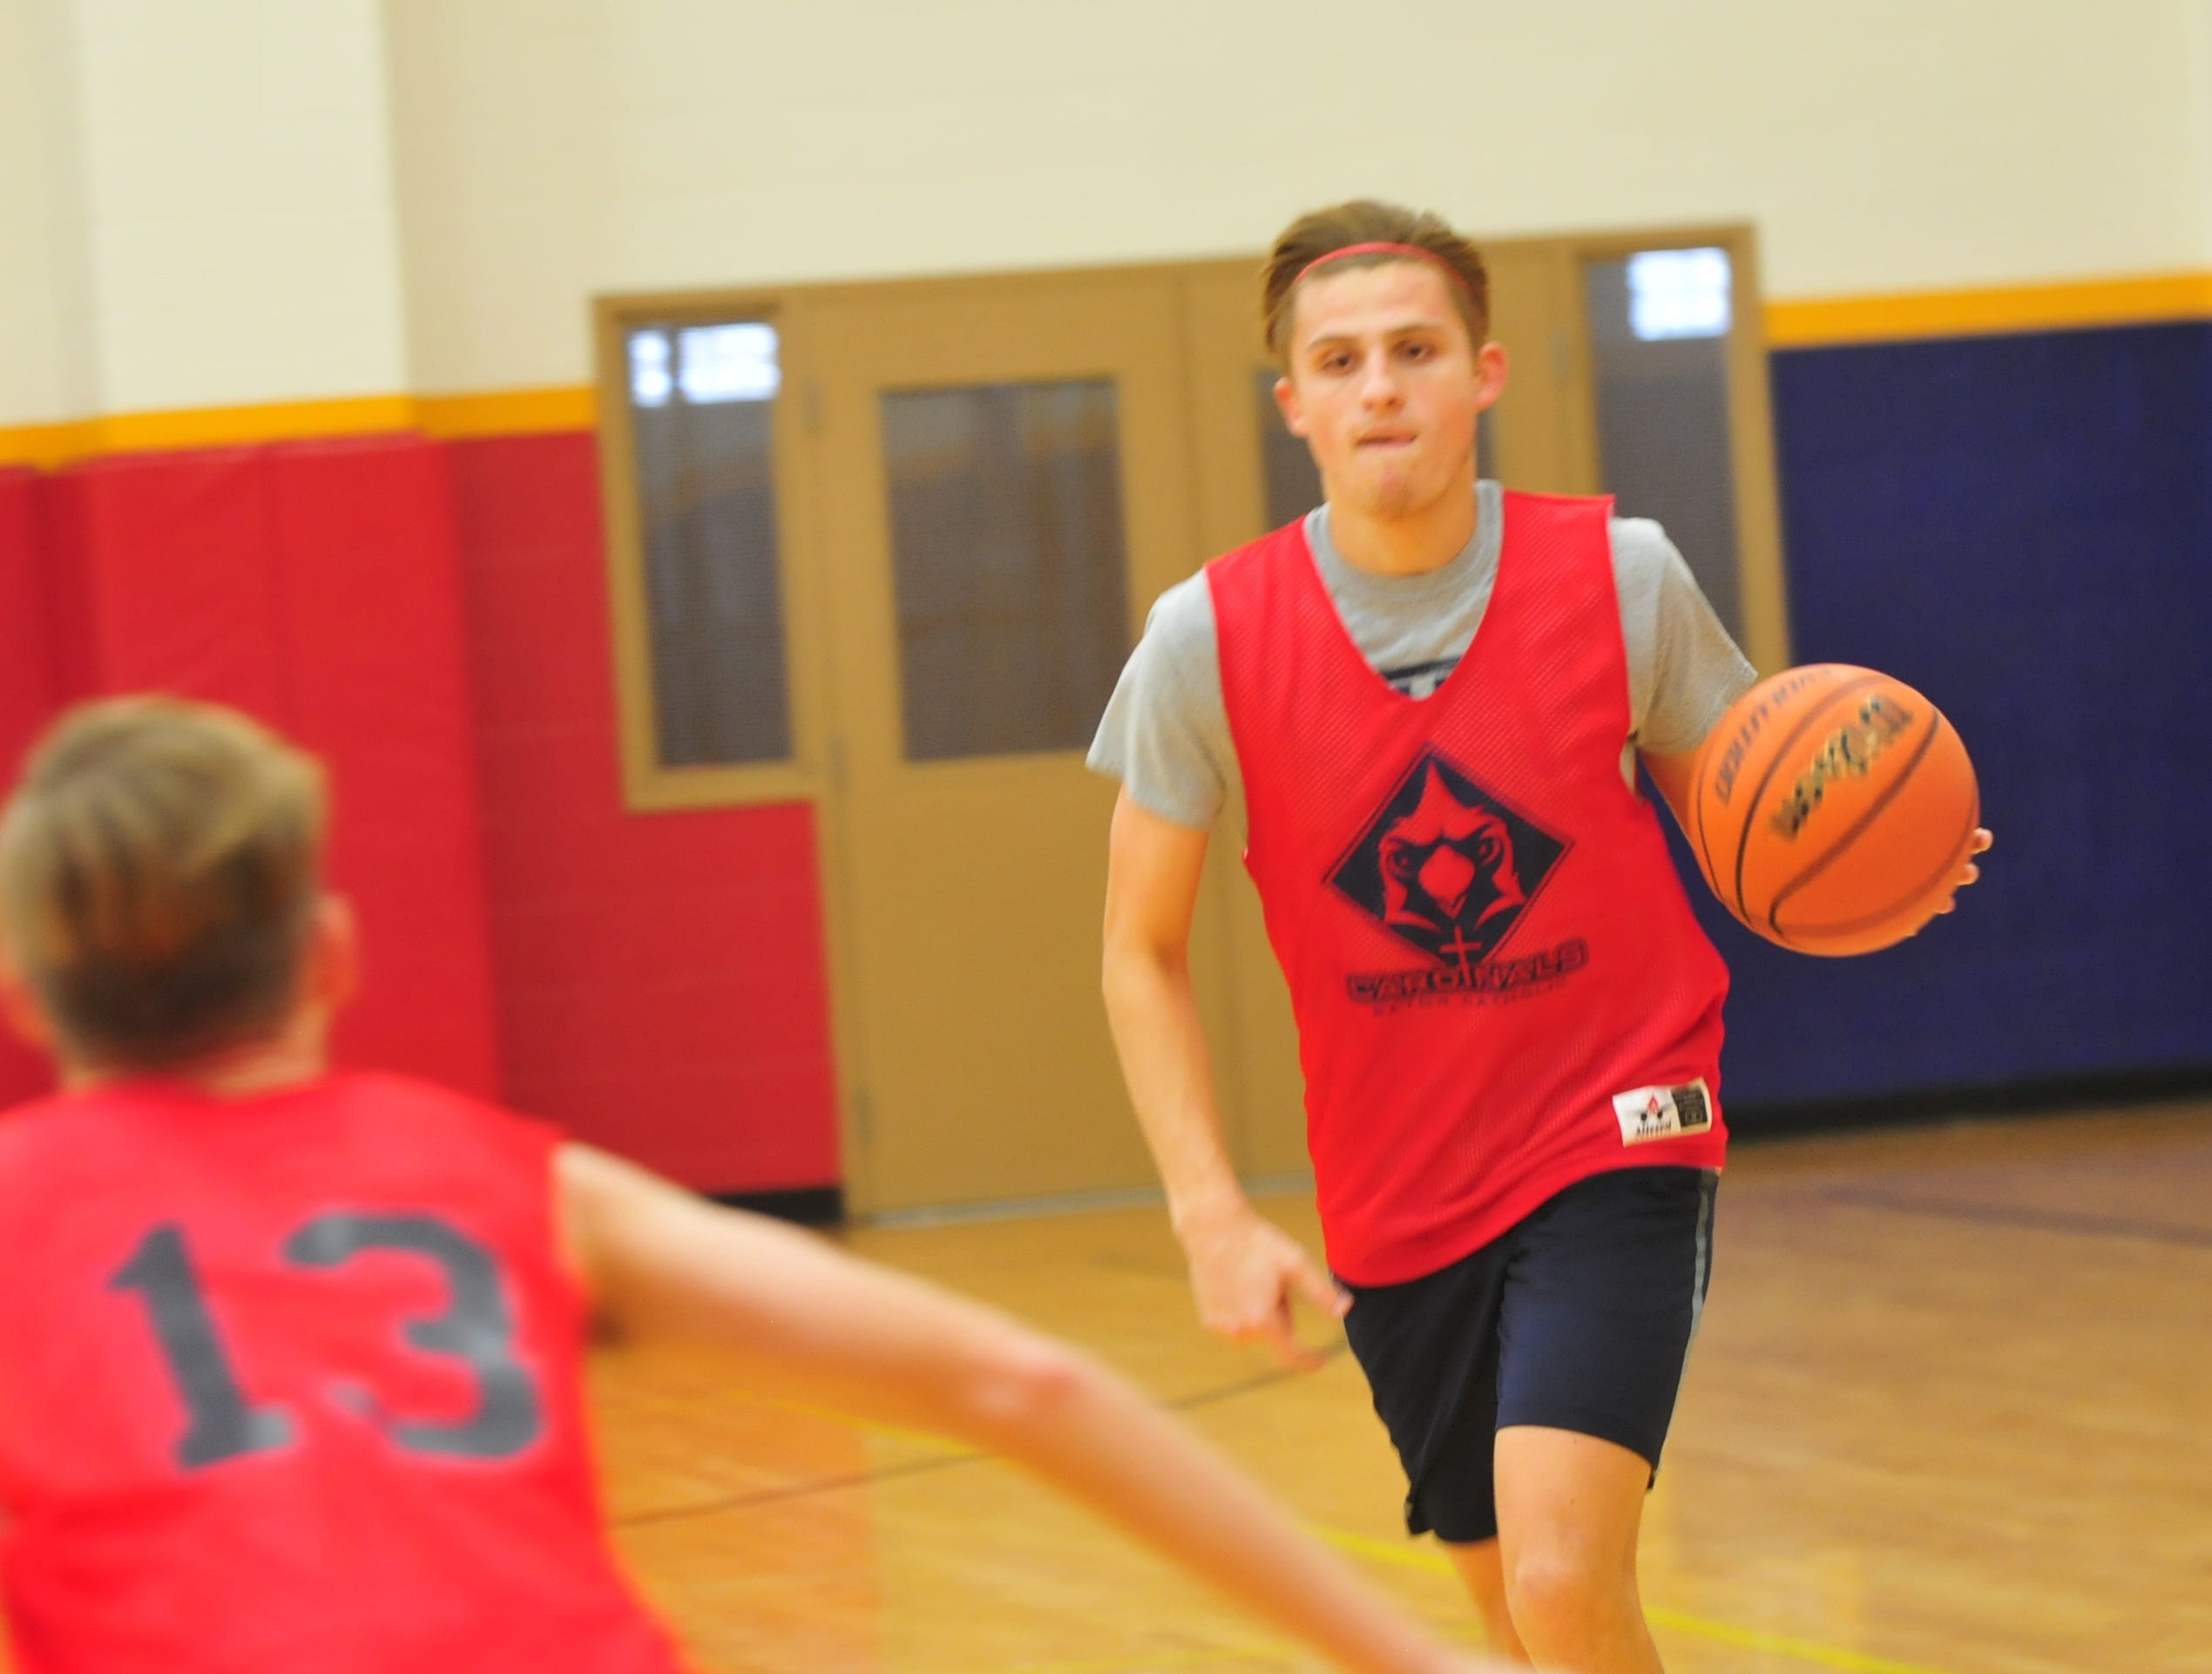 Seton Catholic basketball player Sam Brenneke moves the ball during practice Wednesday, Nov. 28, 2018.